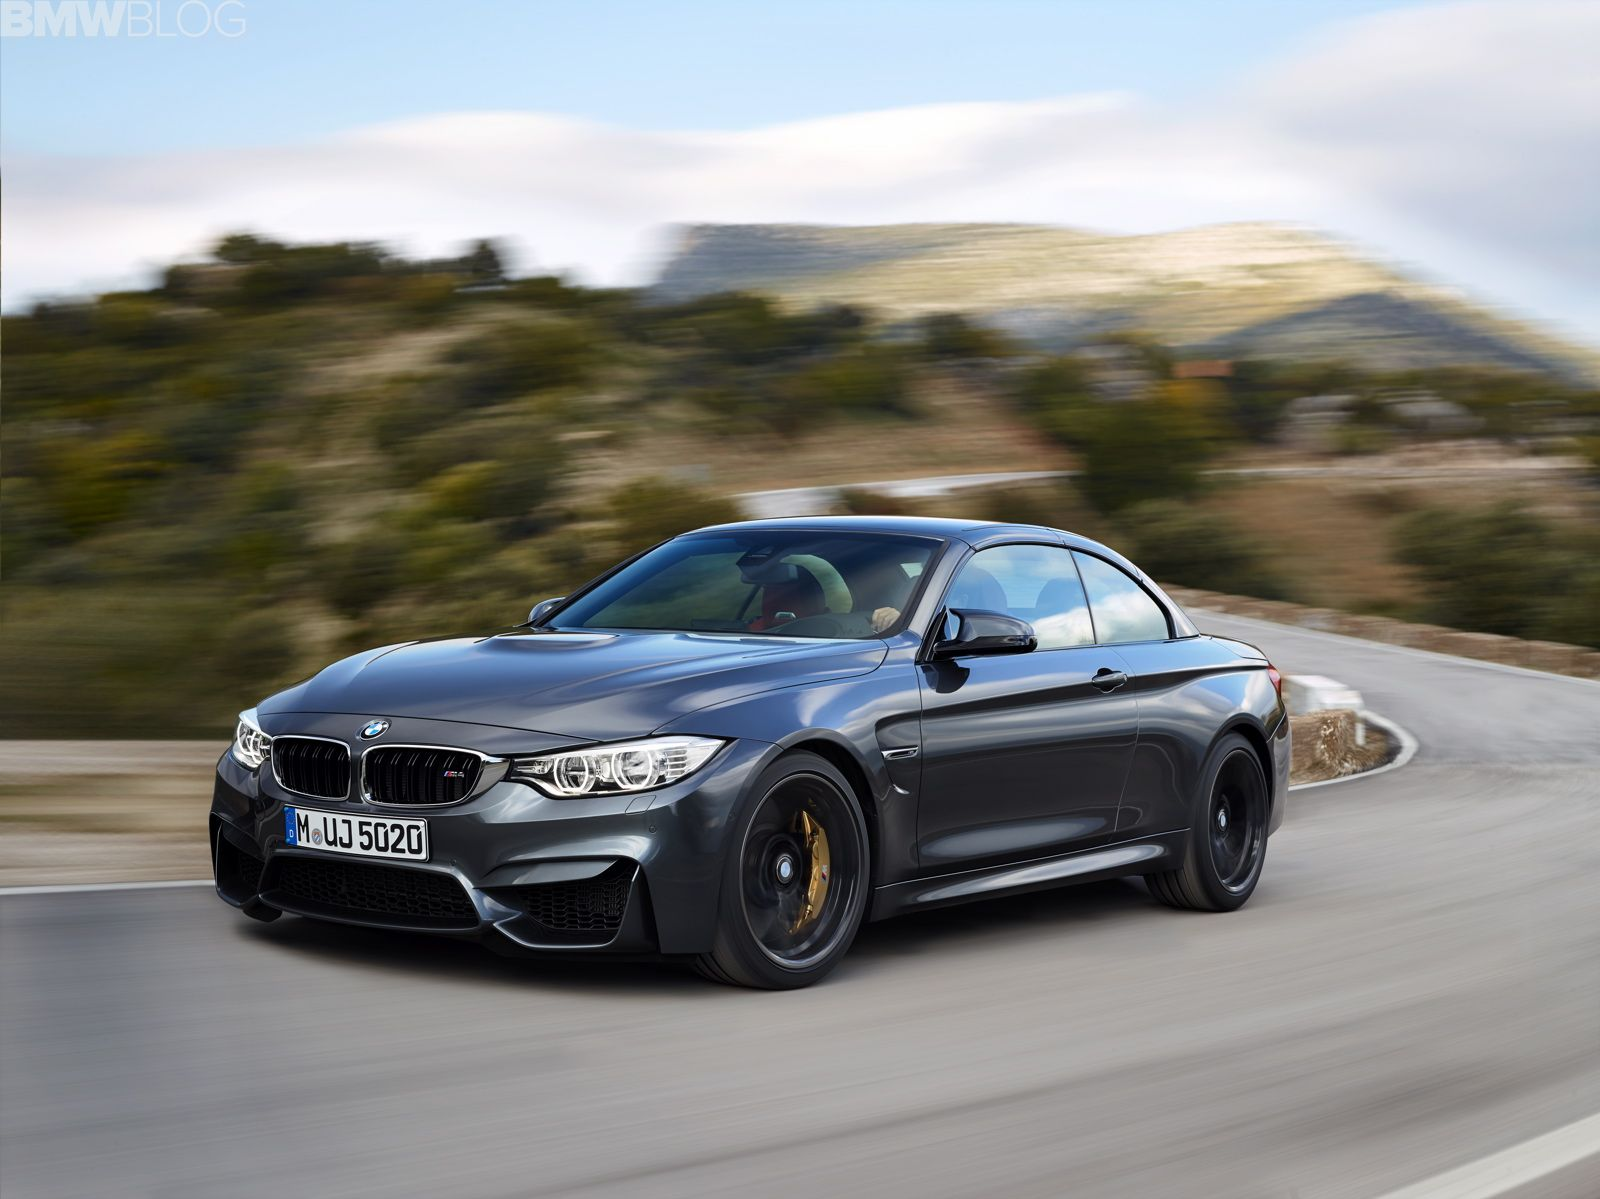 Video 2015 bmw m4 convertible http www bmwblog com